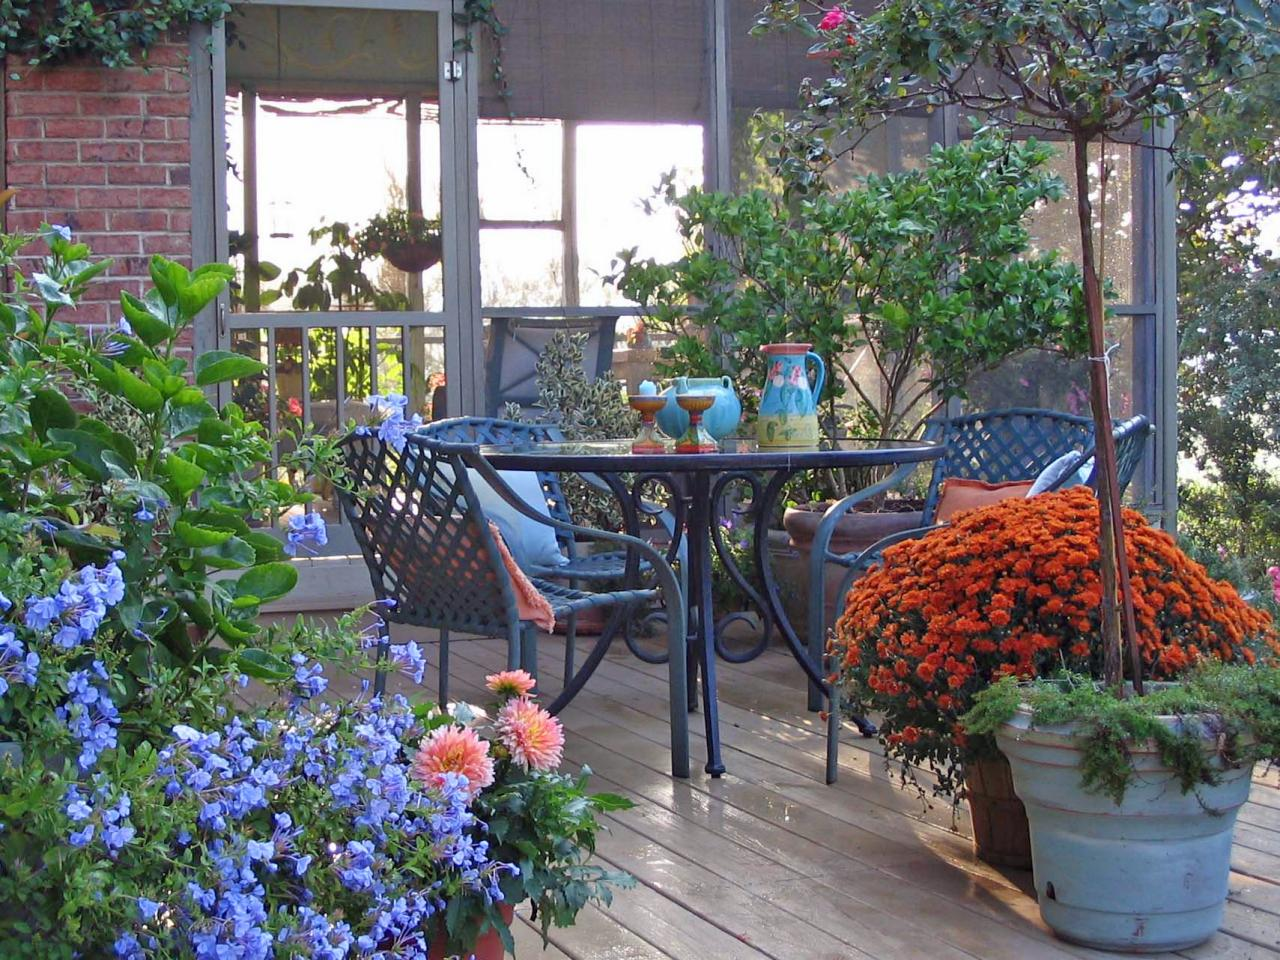 Inviting Deck Full of Flowers